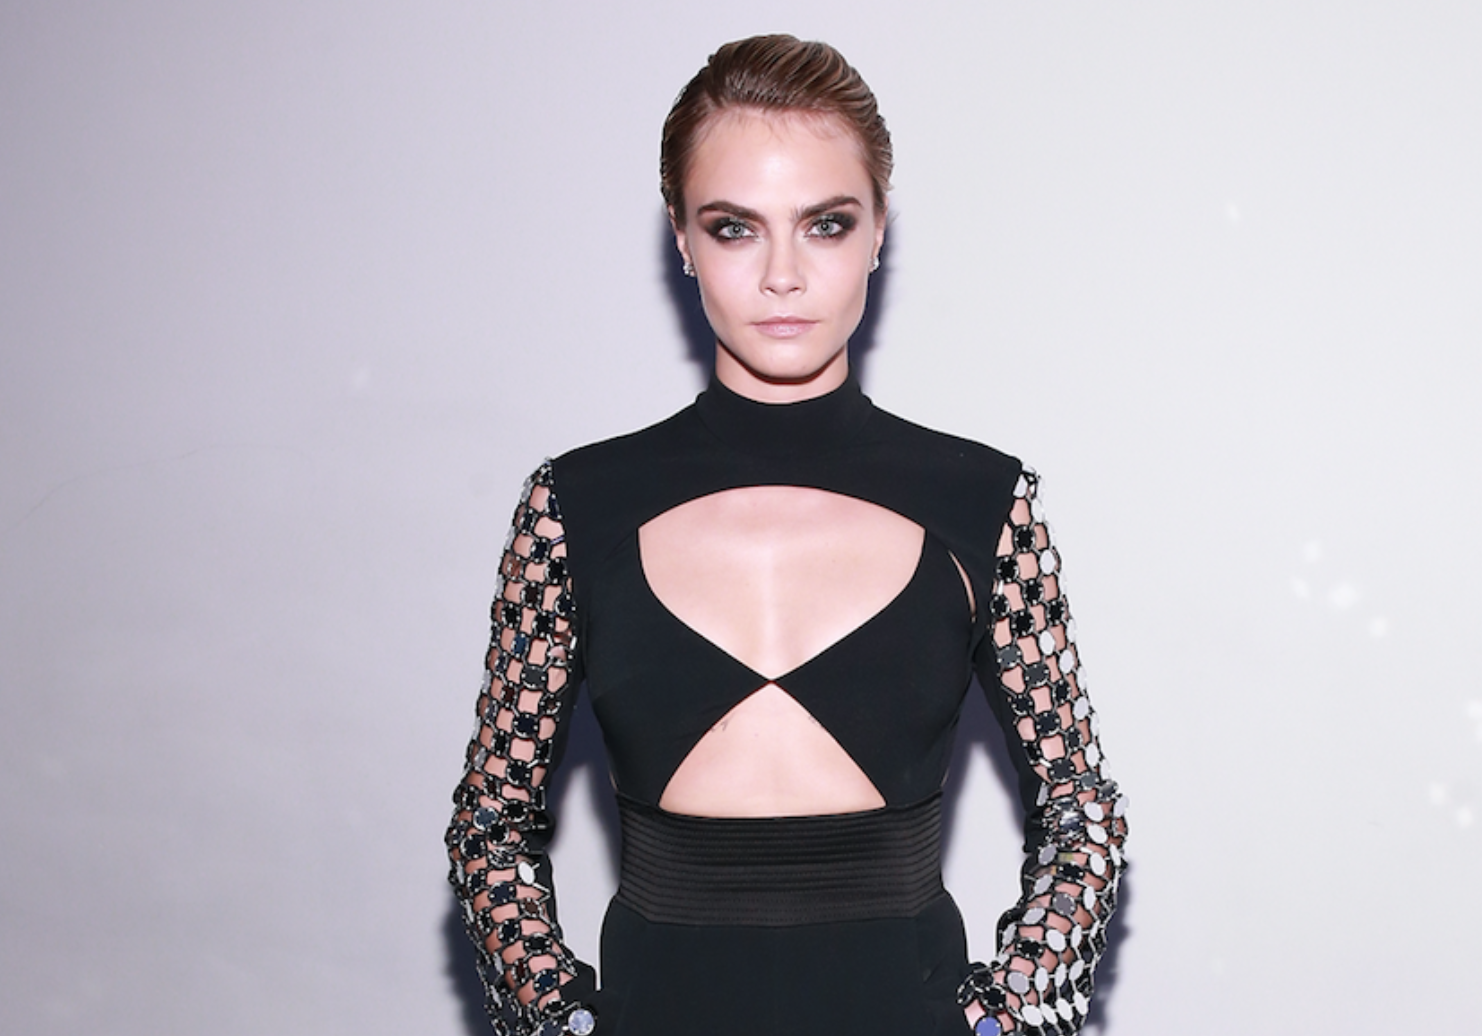 Cara Delevingne Lost Followers Slamming R. Kelly